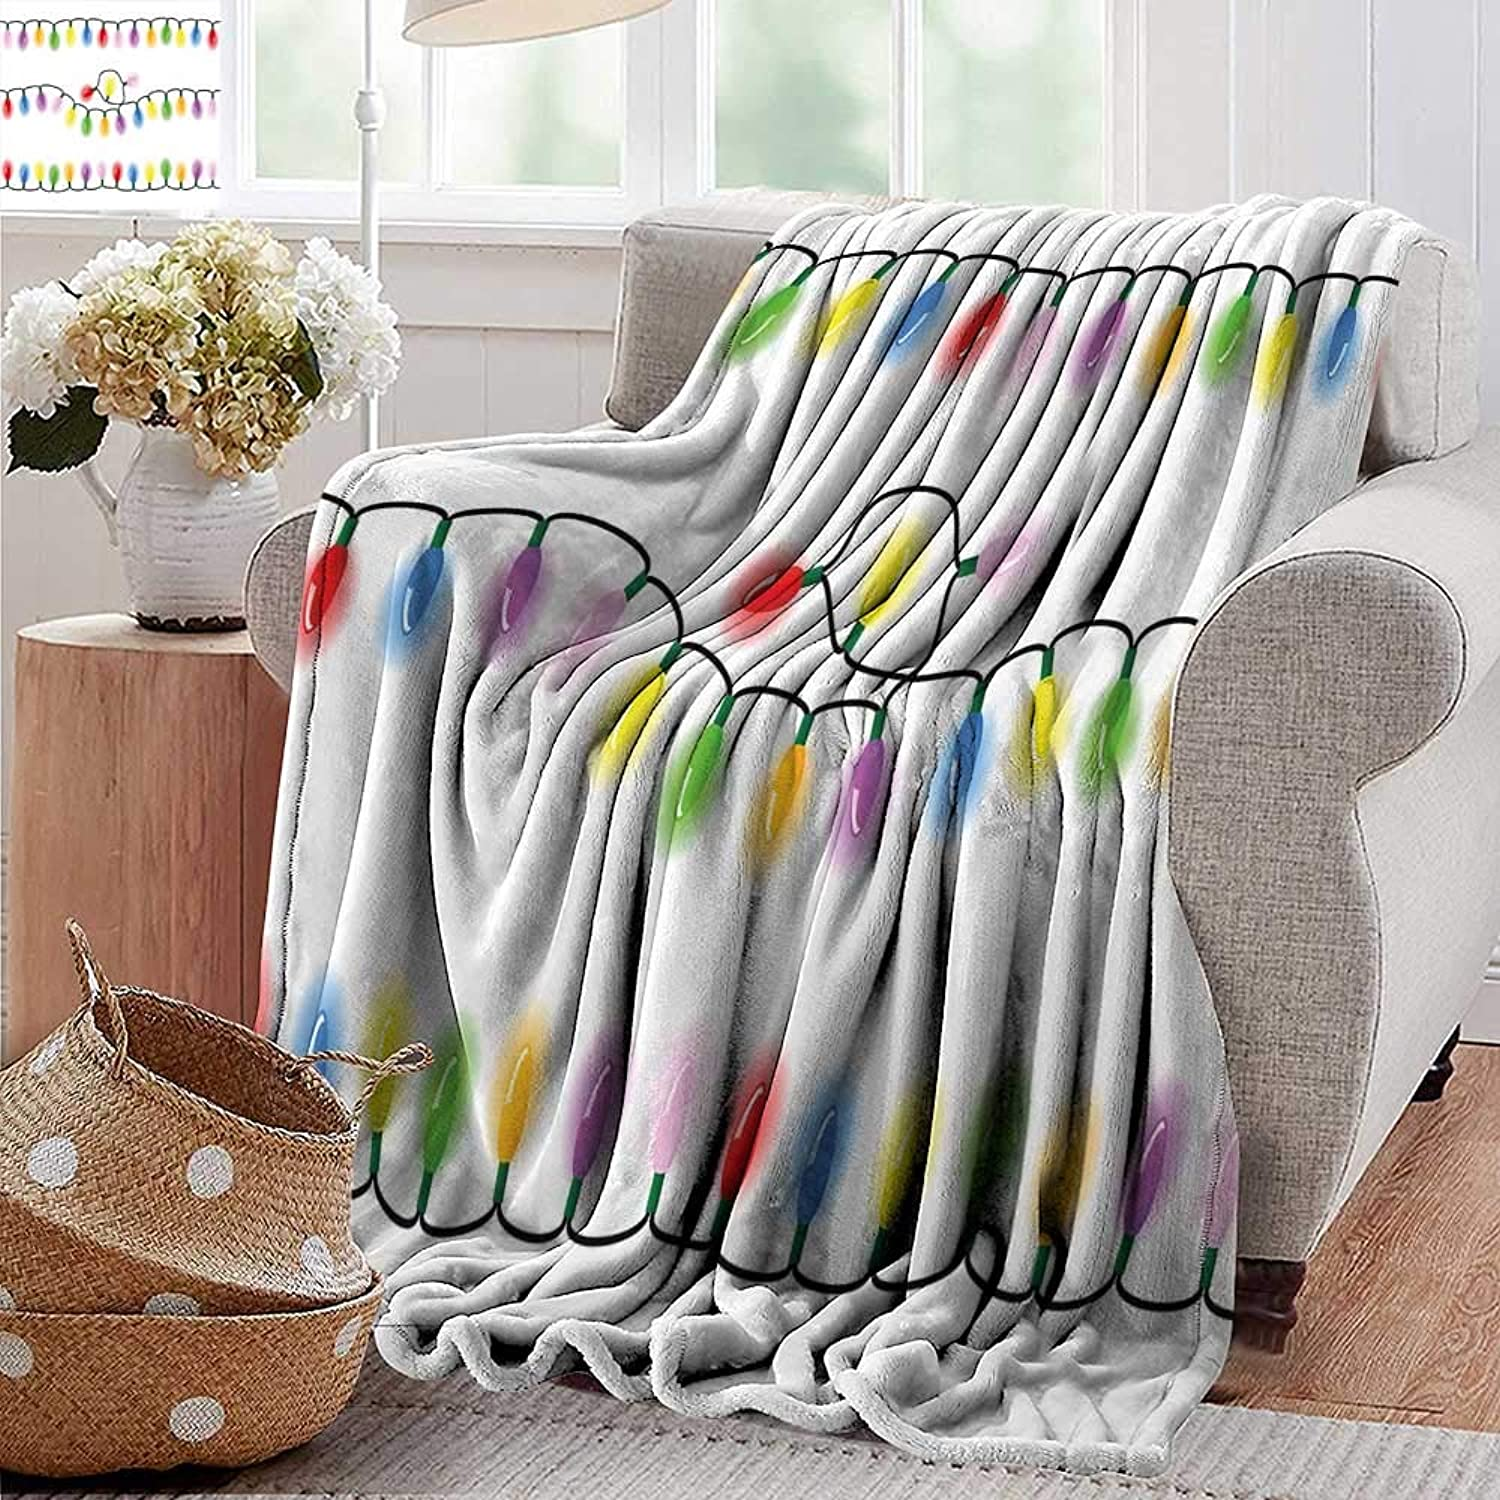 PearlRolan Velvet Touch Ultra Plush,Kids Christmas,Add Vibrant colors to Your Xmas Party Theme Carnival Event Objects Print,Multicolor,300GSM,Super Soft and Warm,Durable Throw Blanket 50 x70